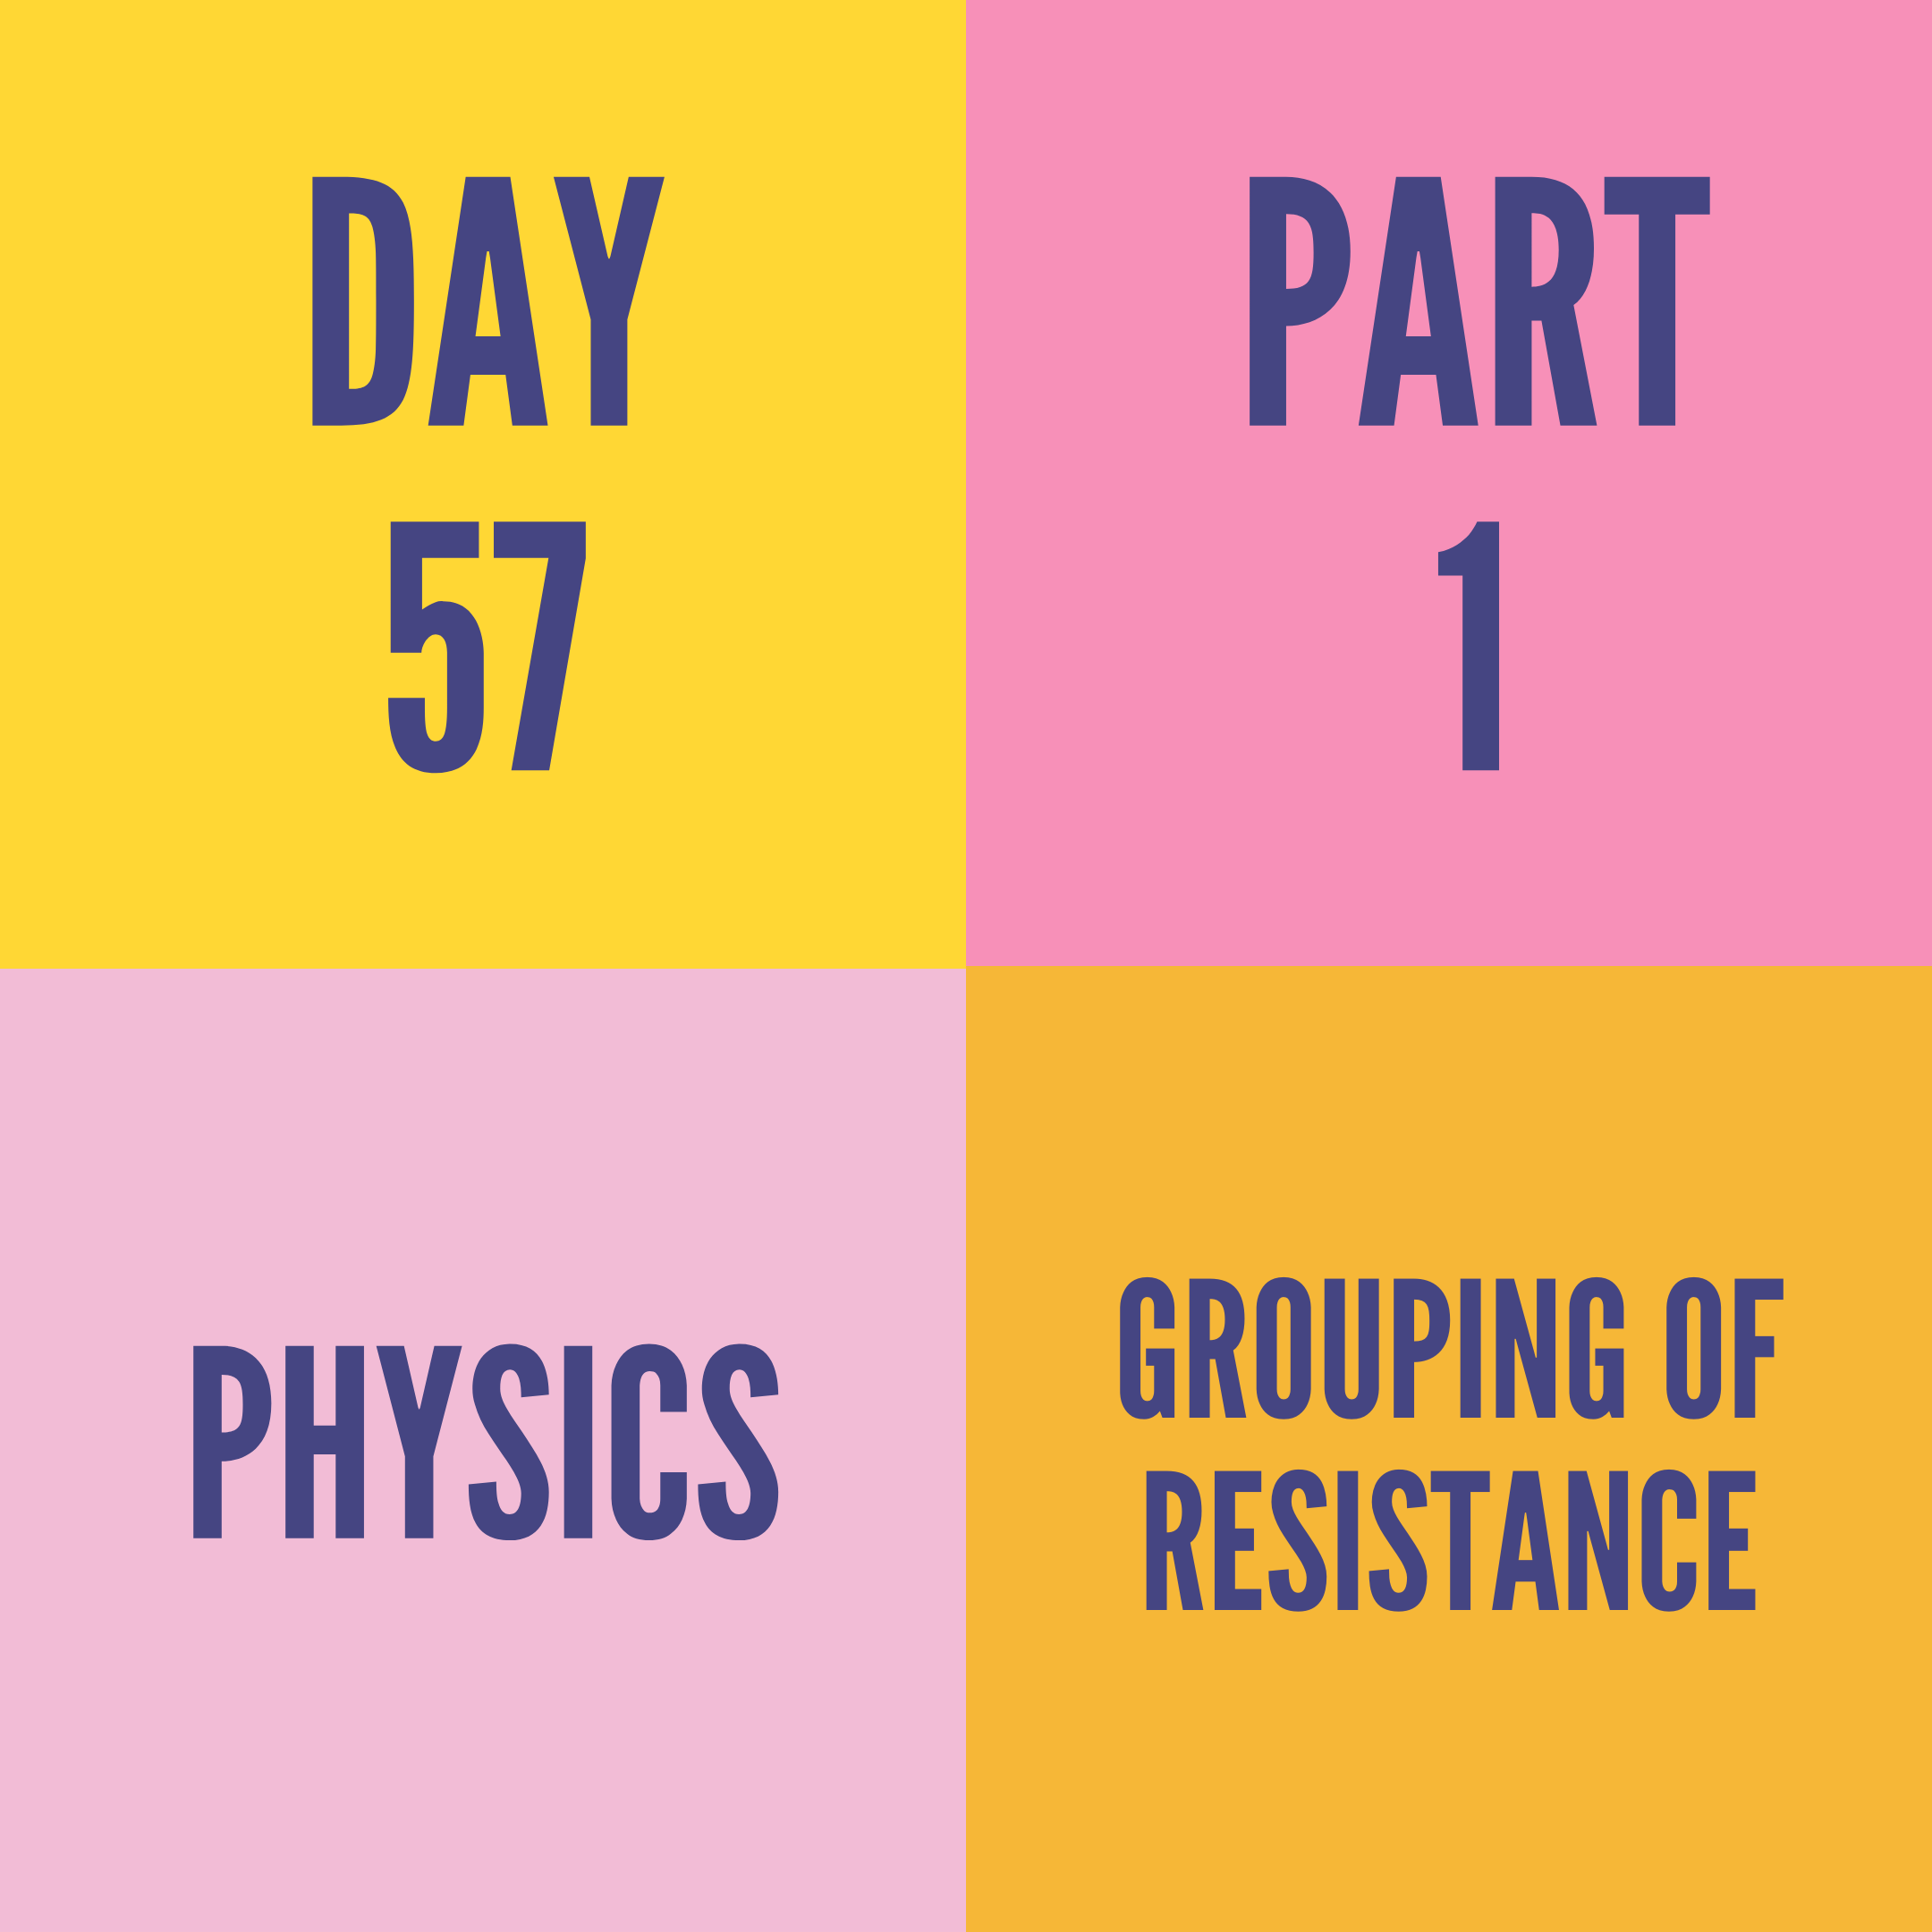 DAY-57 PART-1  GROUPING OF RESISTANCE